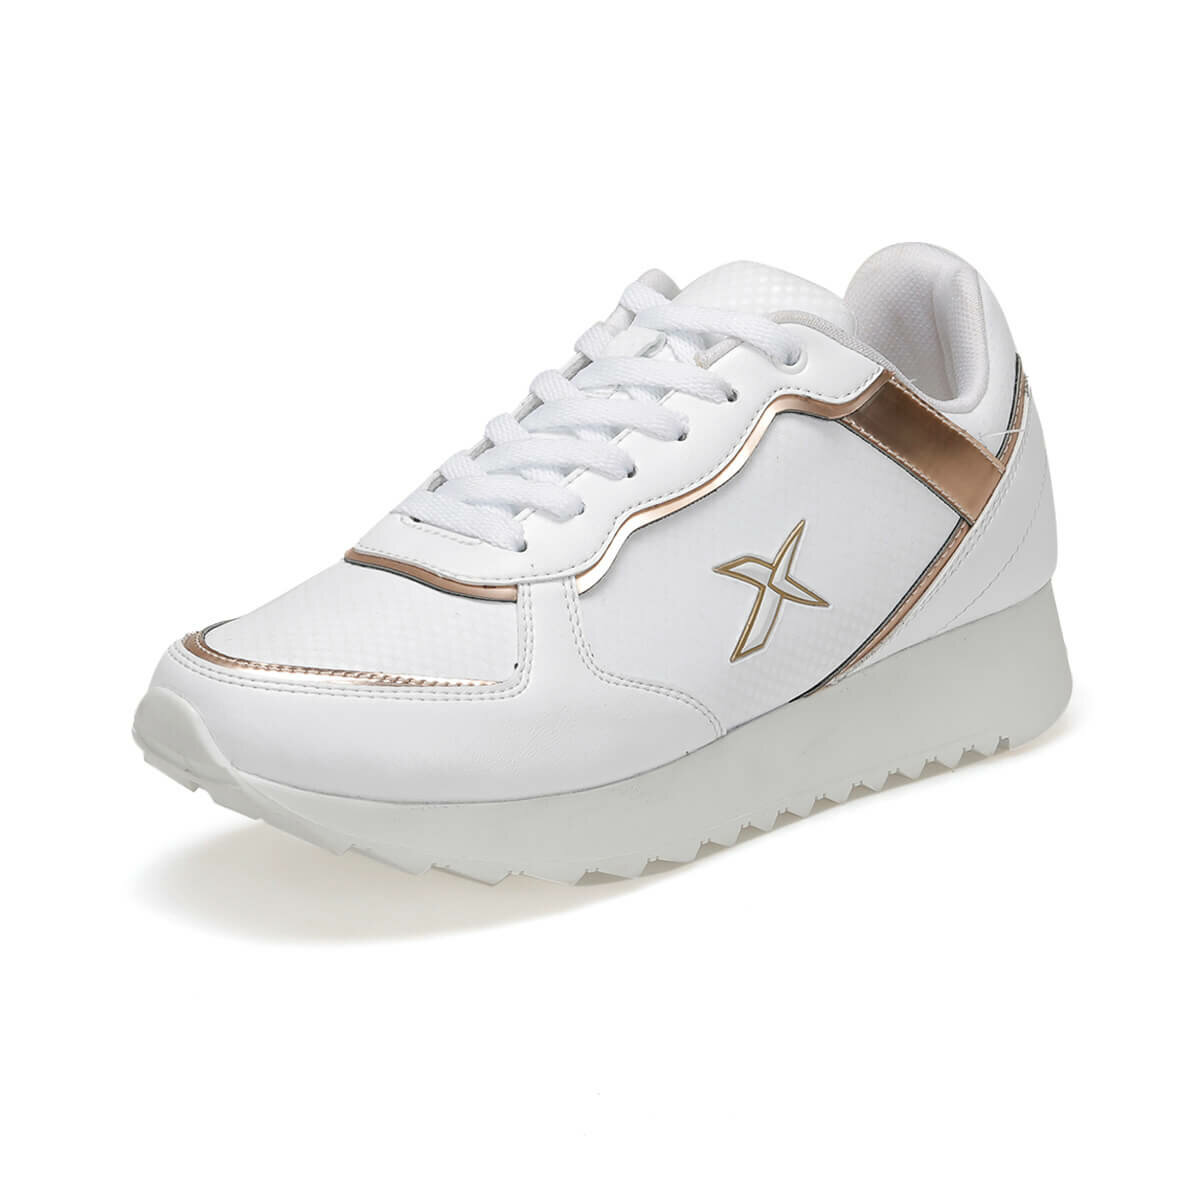 FLO AYRIS W 9PR White Women 'S Sneaker Shoes KINETIX